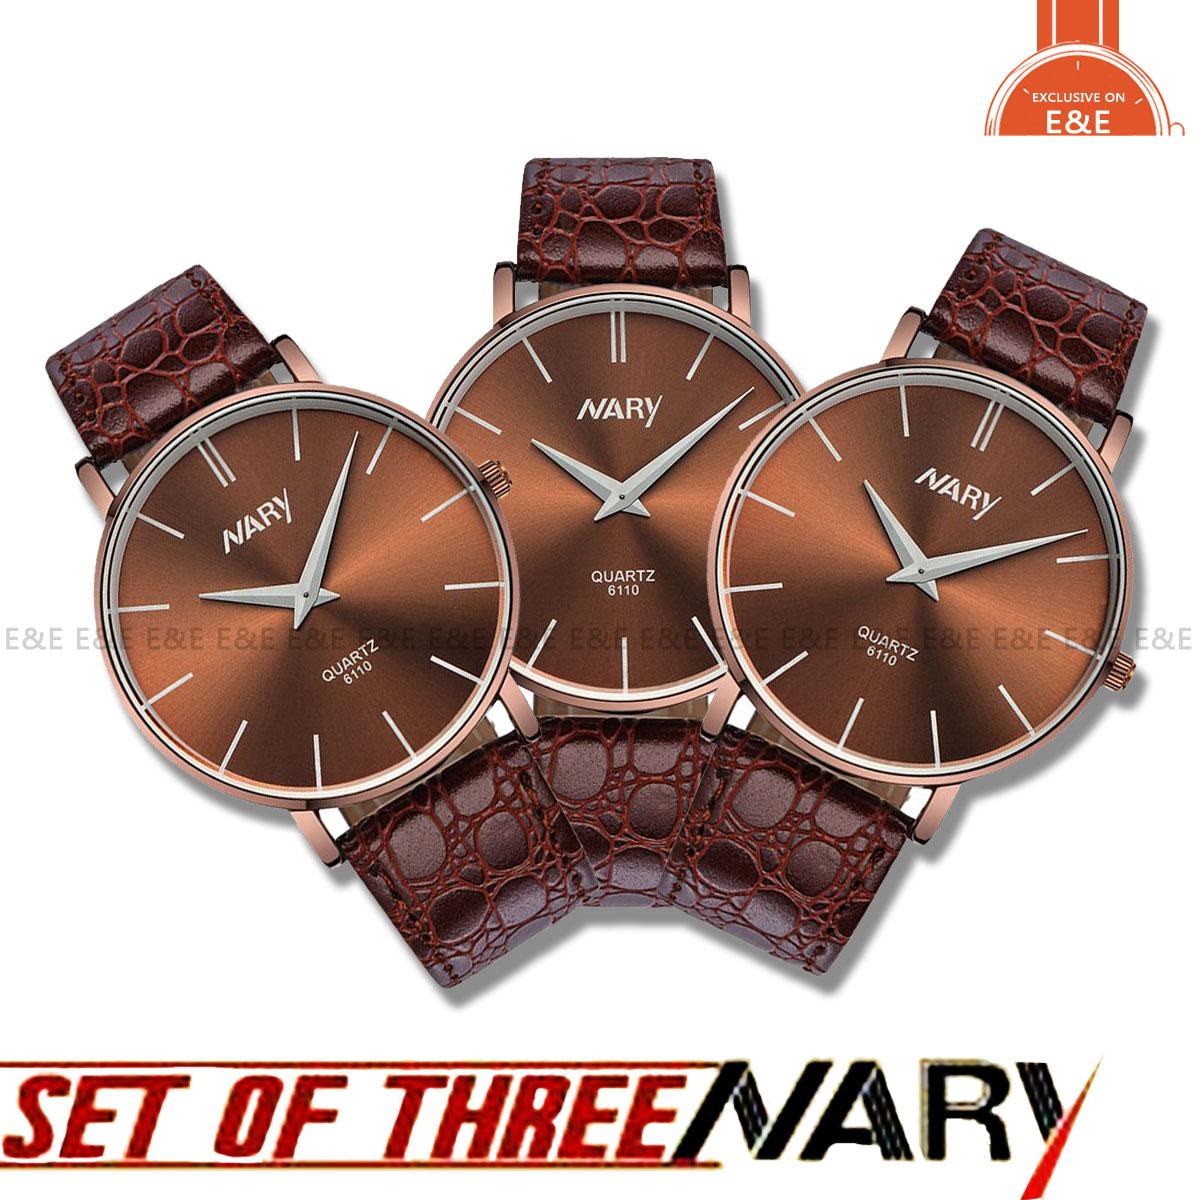 E&E Women's Ultrathin Brown Leather Strap Watch 6110 (Set of Three)